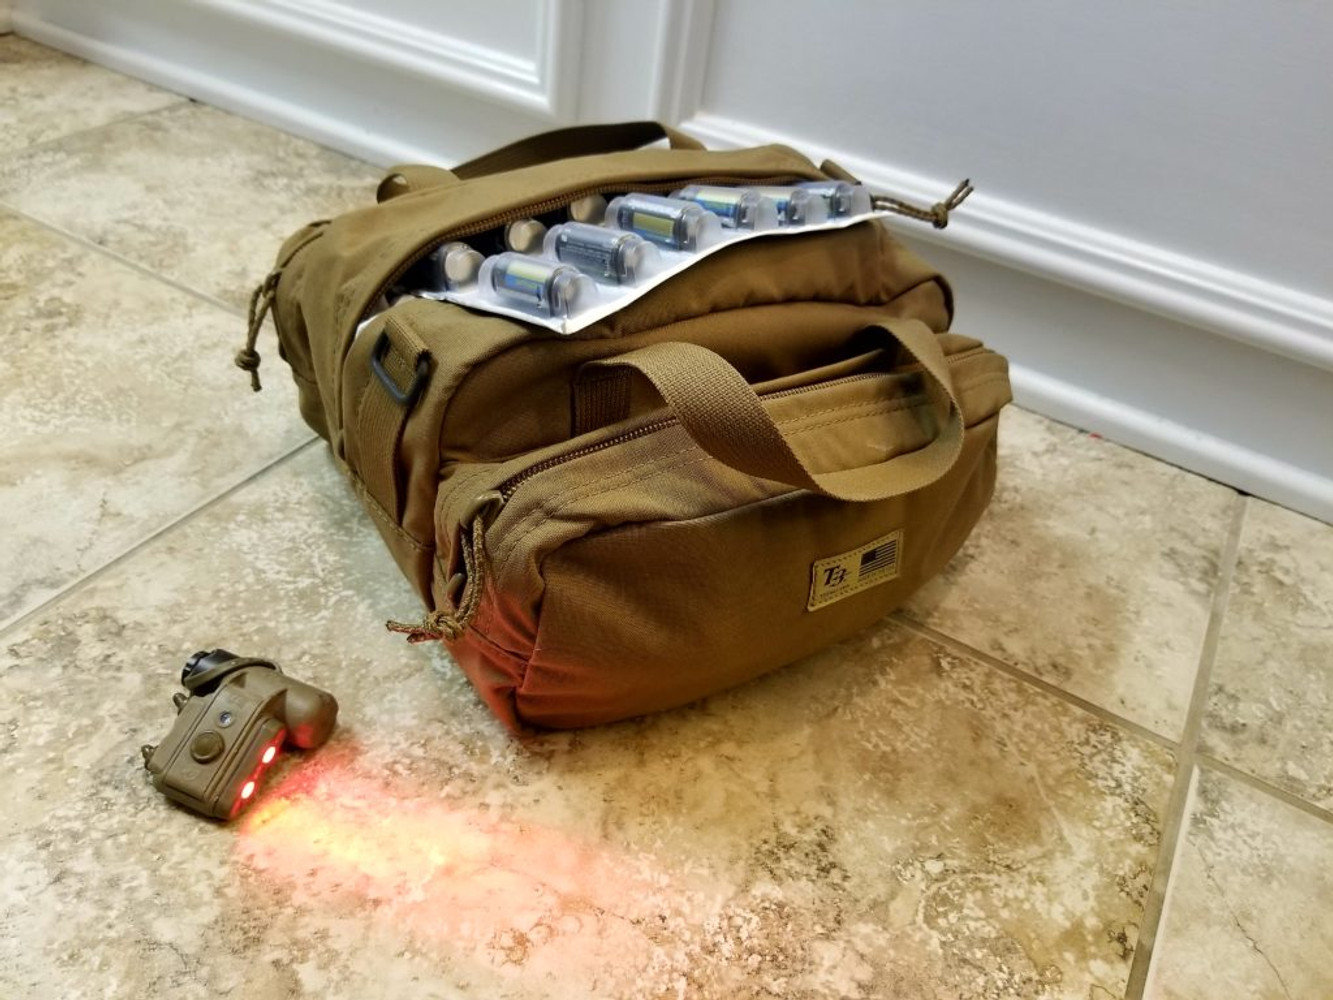 Loadout Room: T3 Gear Tool Bag: Strong and compact storage solution